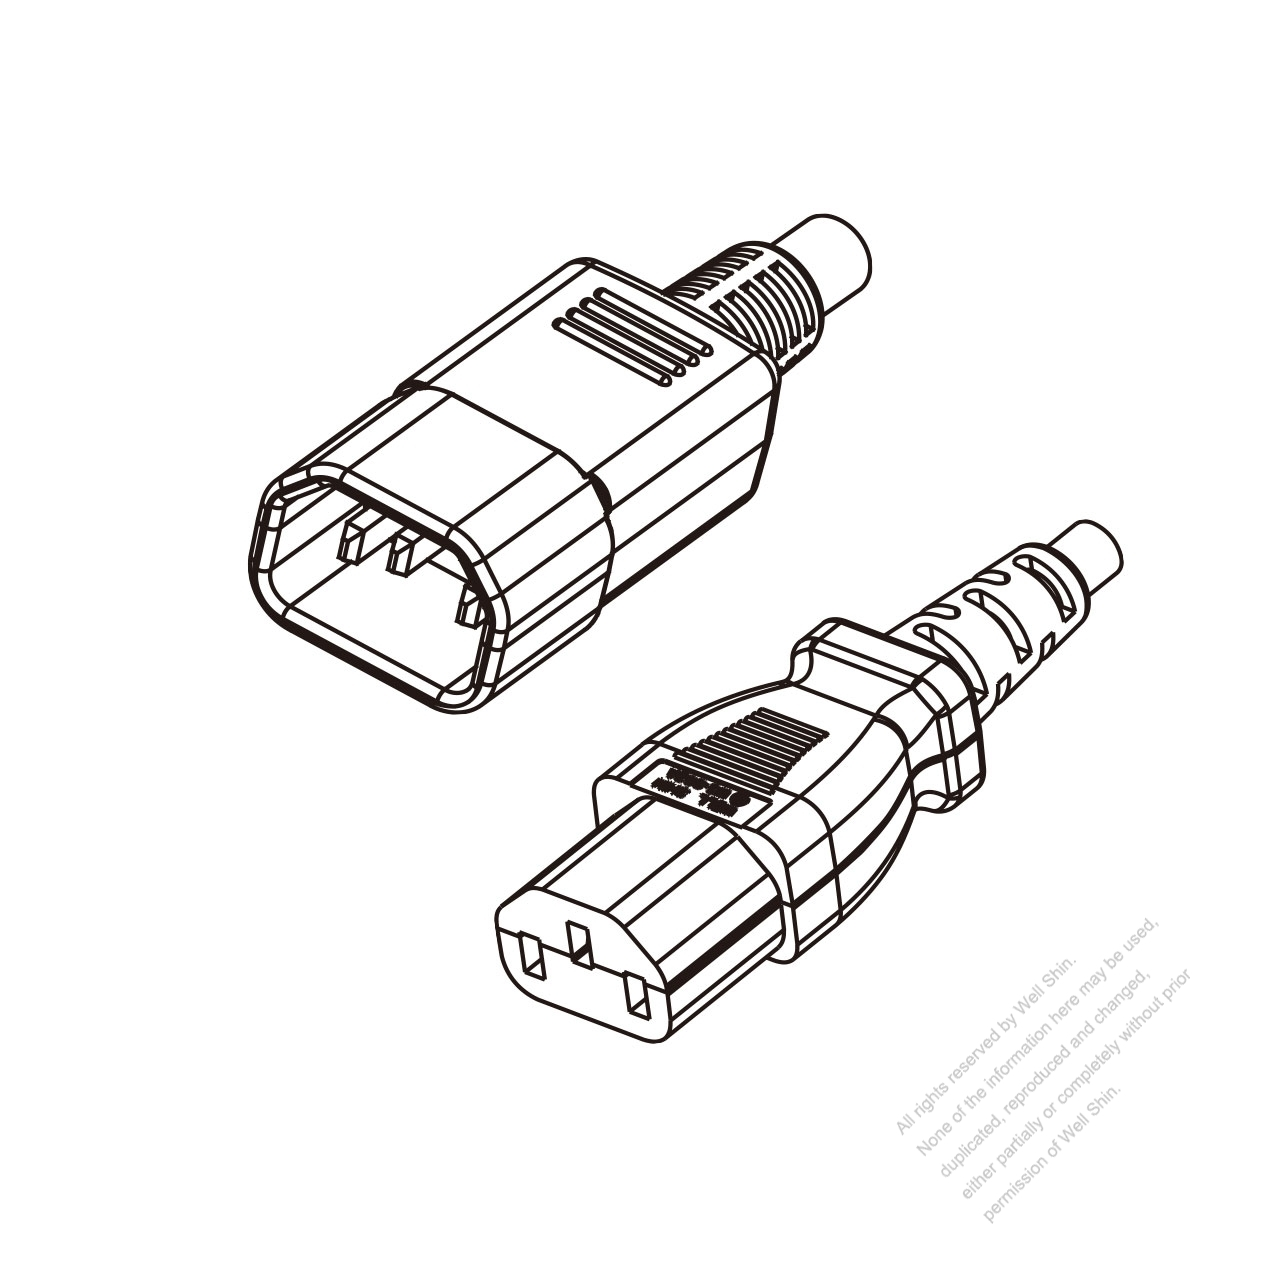 hight resolution of japan 3 pin iec 320 sheet e plug to iec 320 c13 power cord set